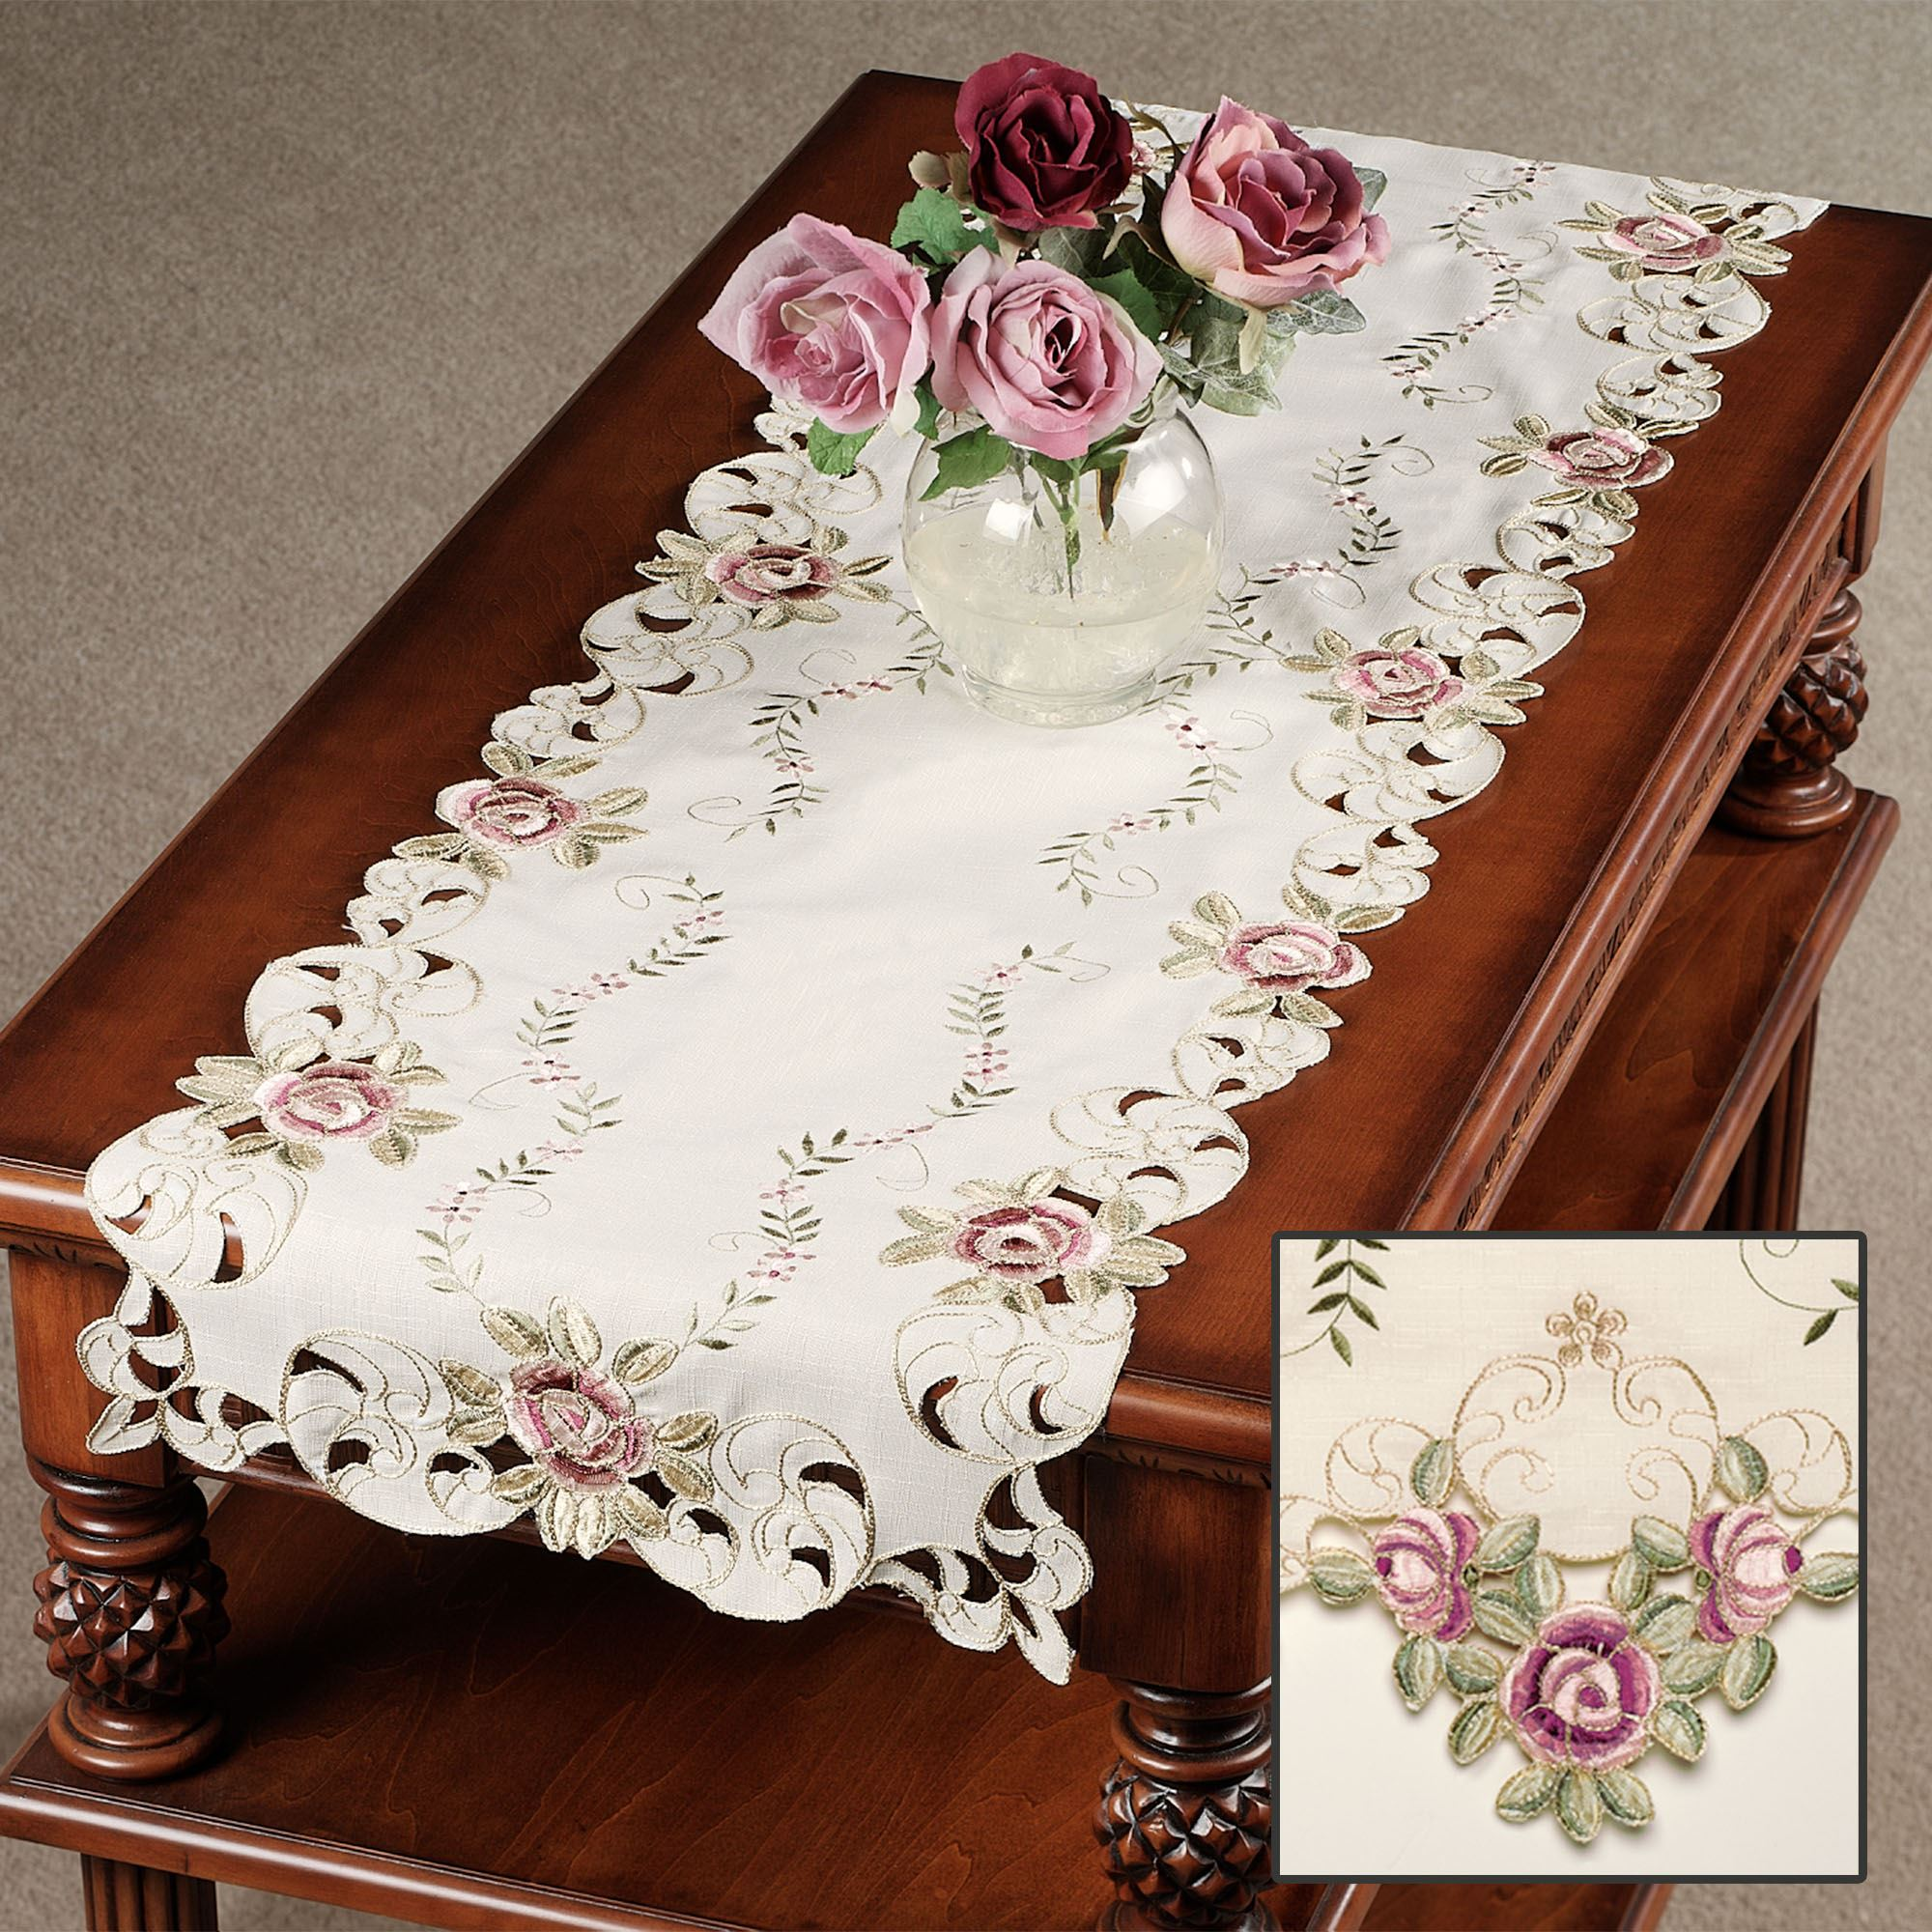 Best Kitchen Gallery: Bella Rose Embroidered Table Runners of Table Runners  on rachelxblog.com